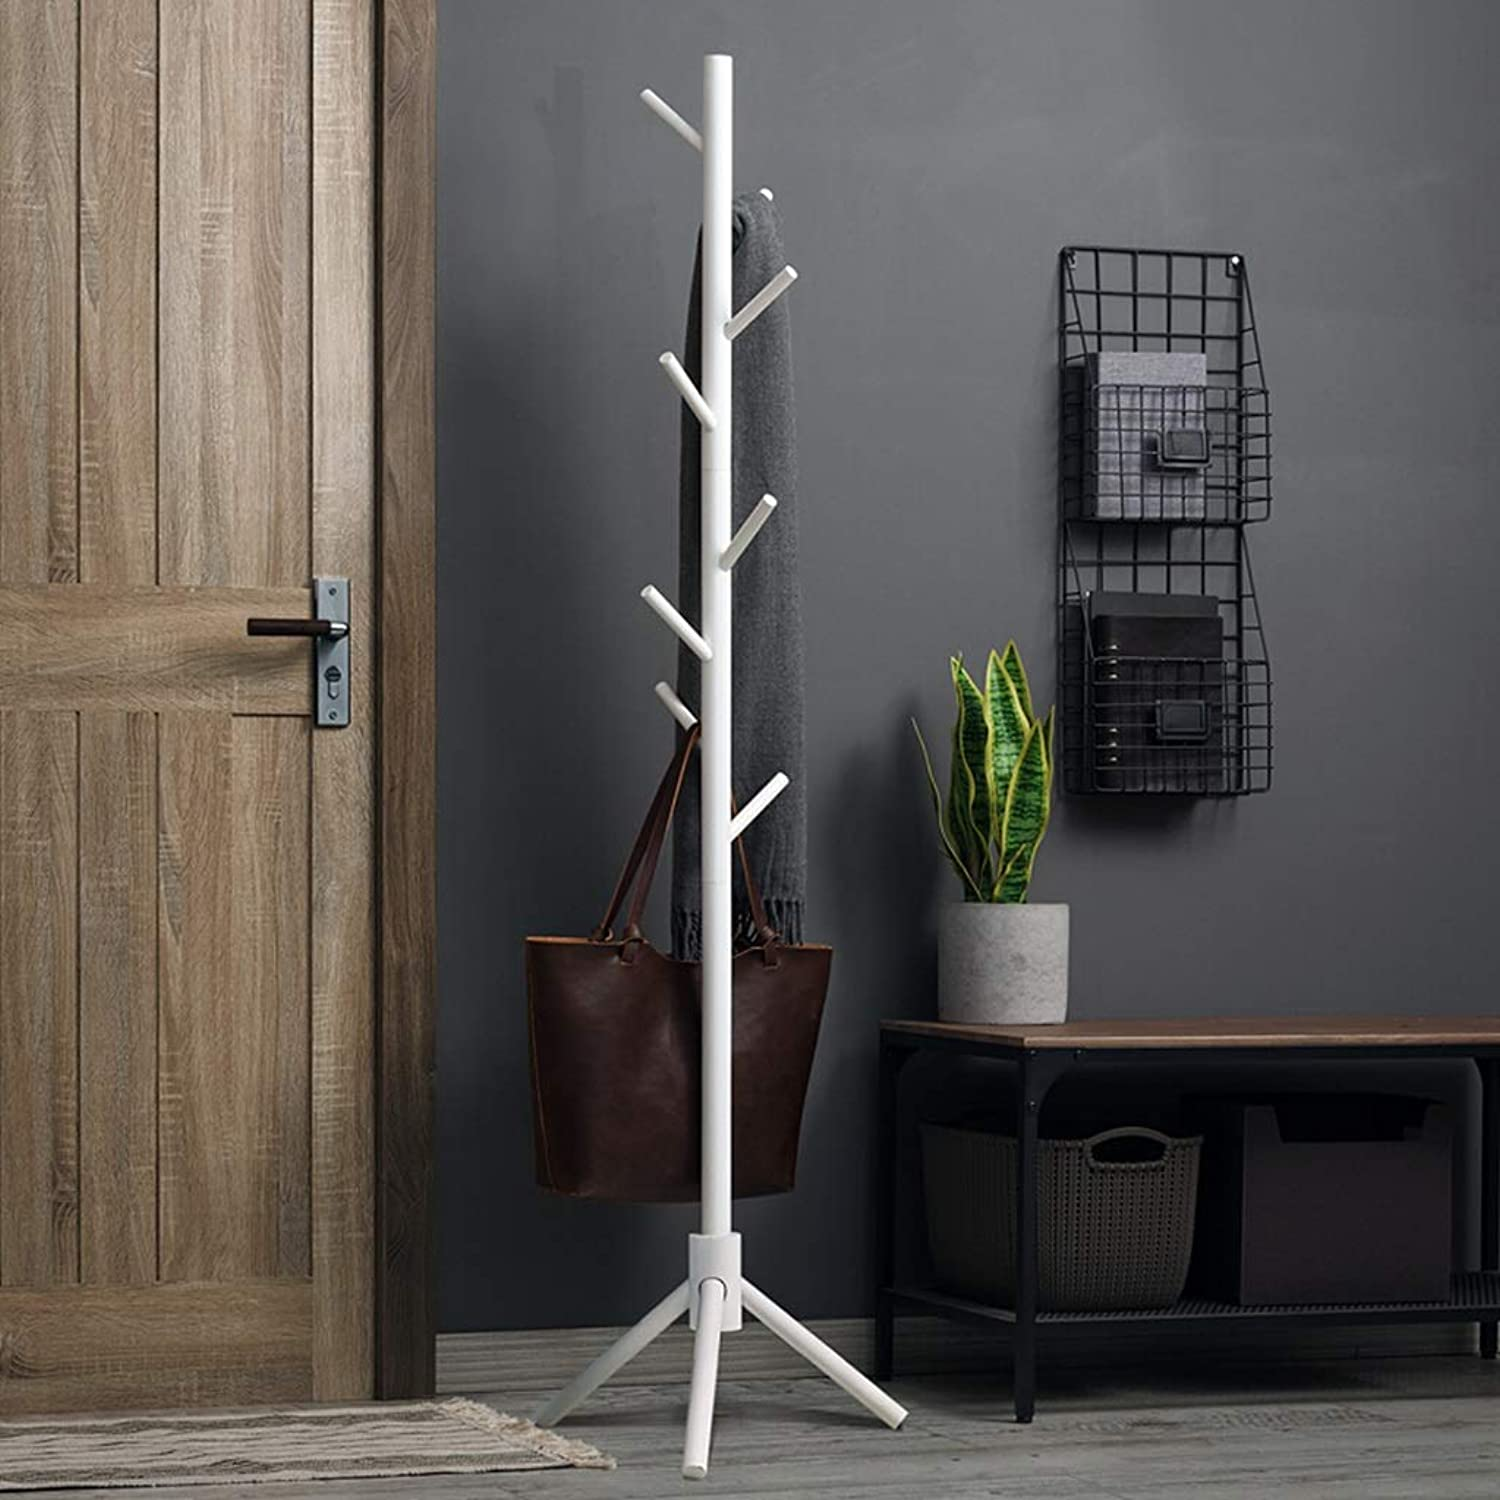 Y.H.Valuable Standing Coat Racks Coat Stand Clothes Rack Hat Coat Rack Floor Hanger Hall for Hanging All Kinds of Clothes, Coats, Jackets, Scarves, Hats (color   White)